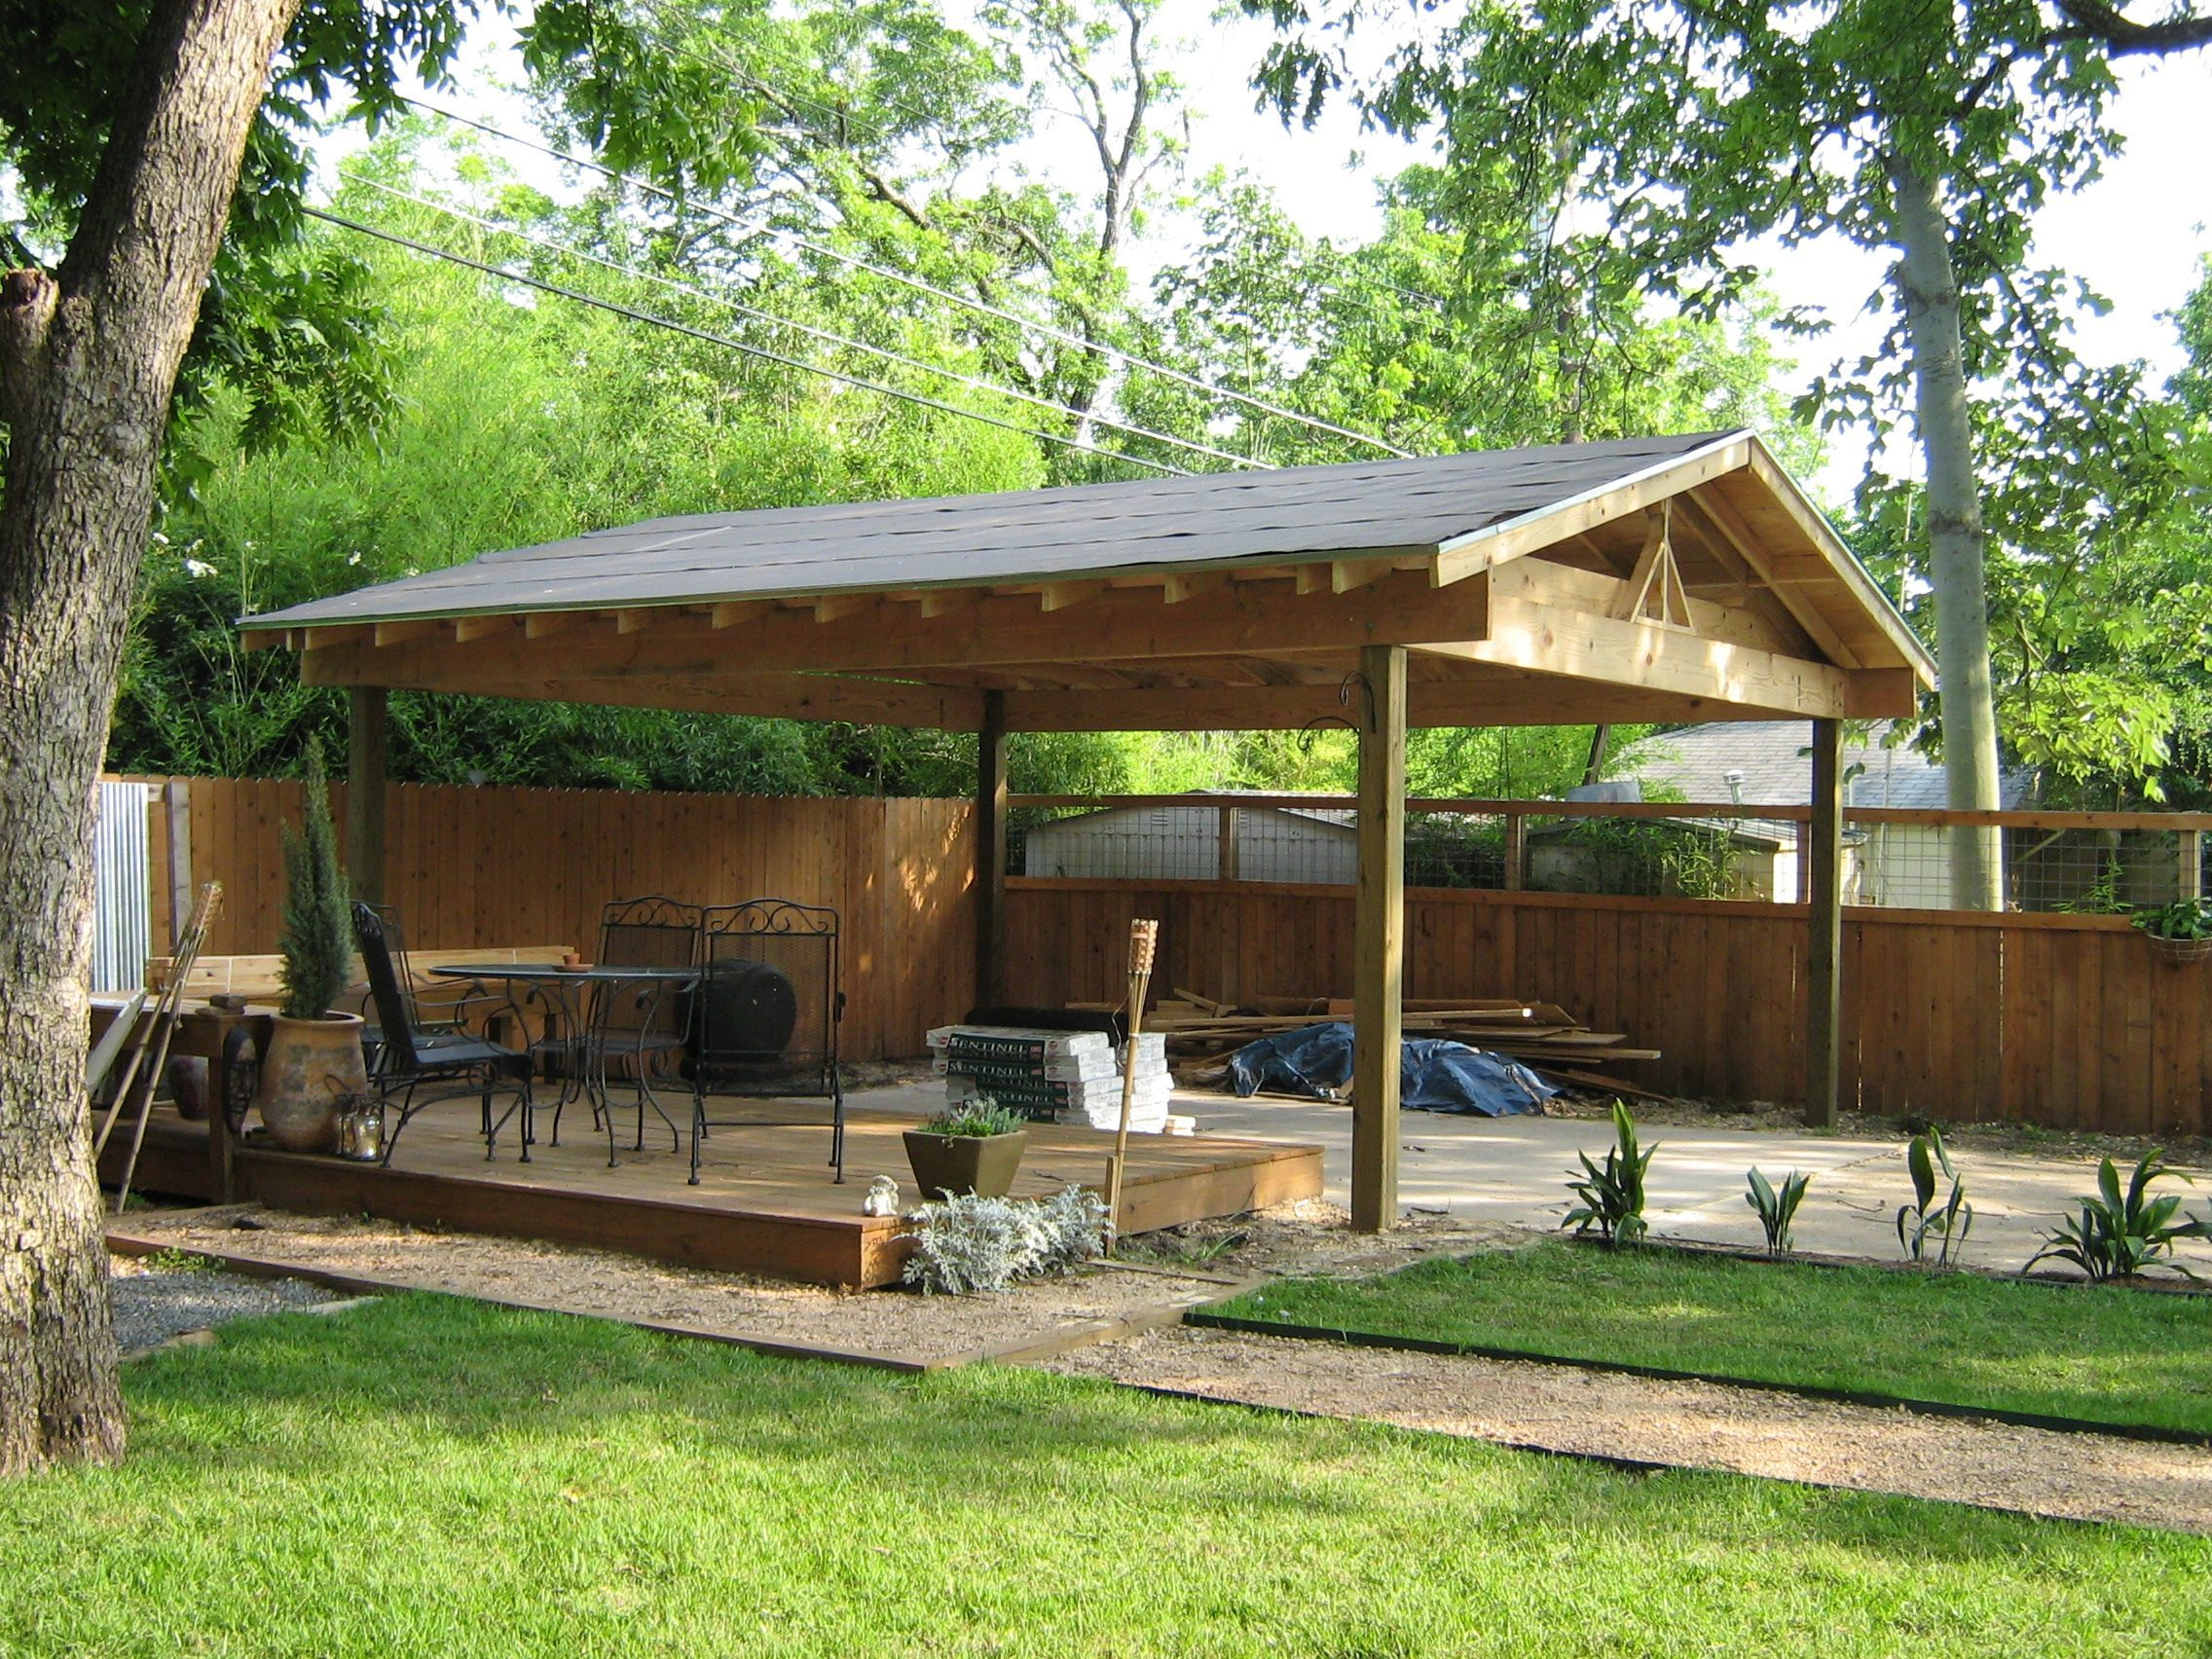 37 Charming Free Standing Carport Wooden Diy carport